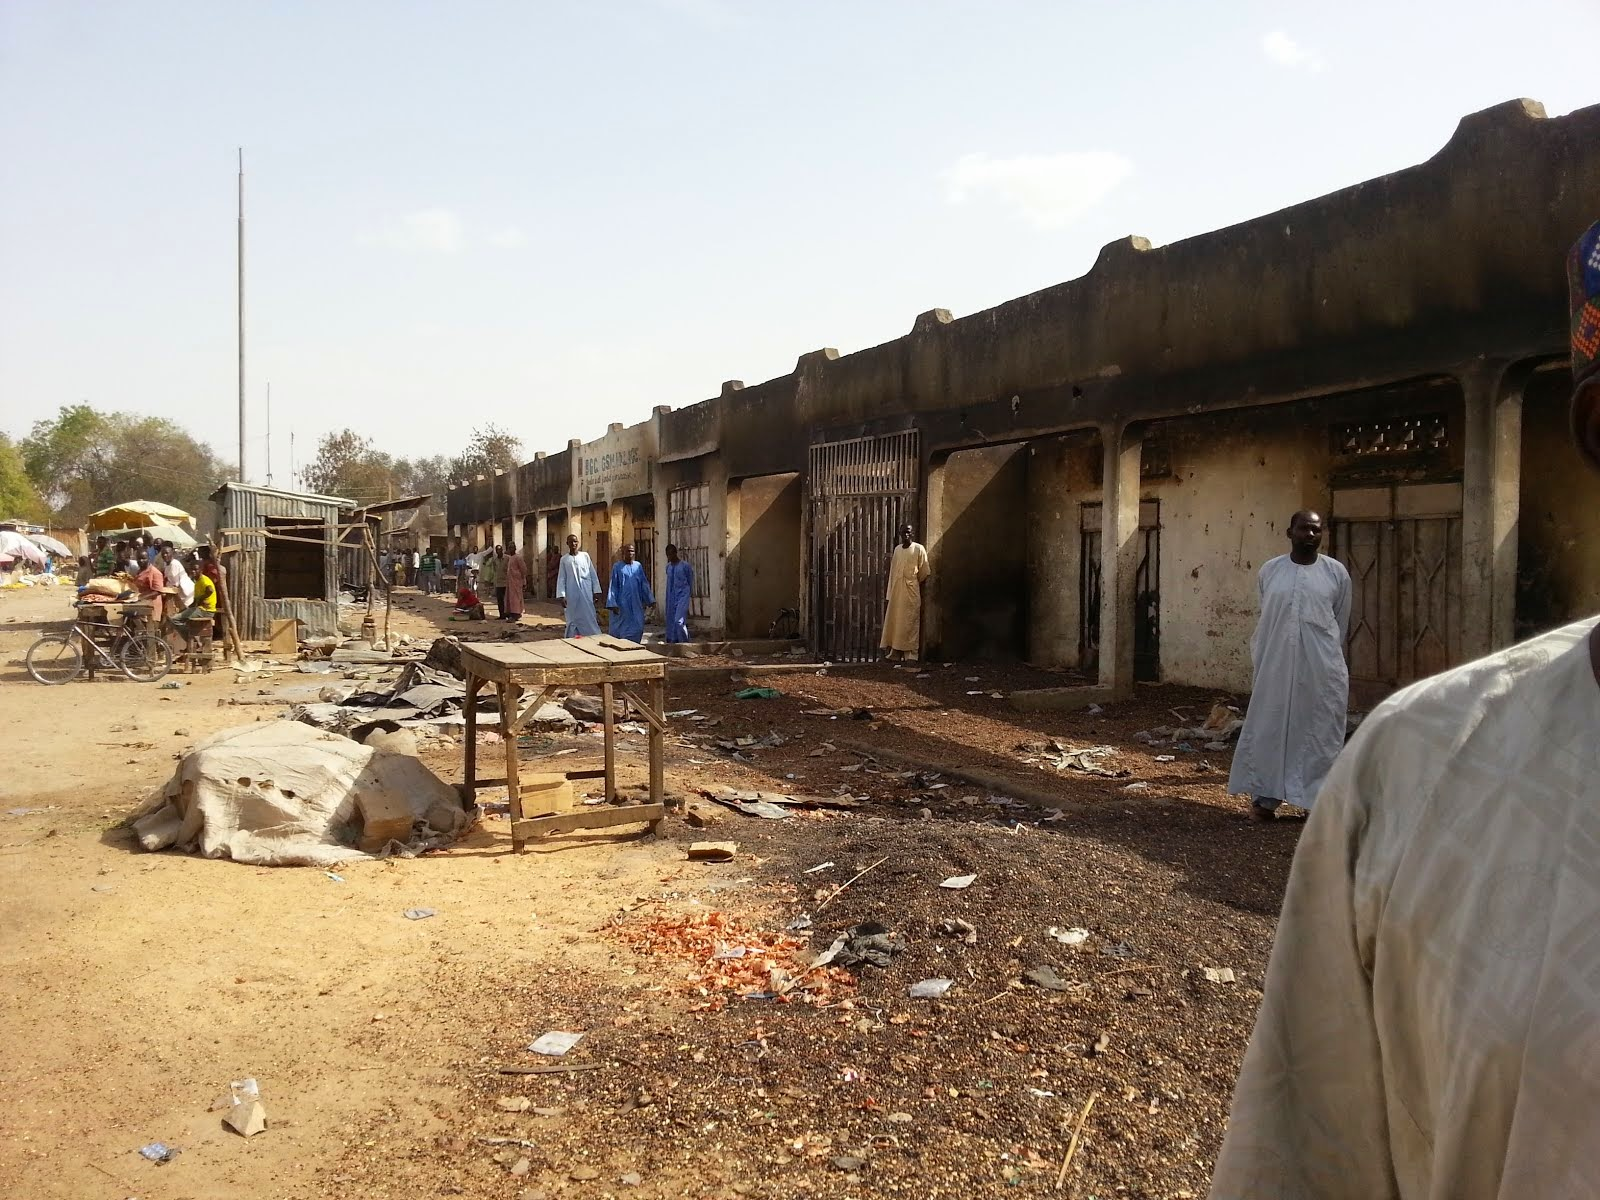 A Borno village market after the Boko Haram terrorists attacked recently